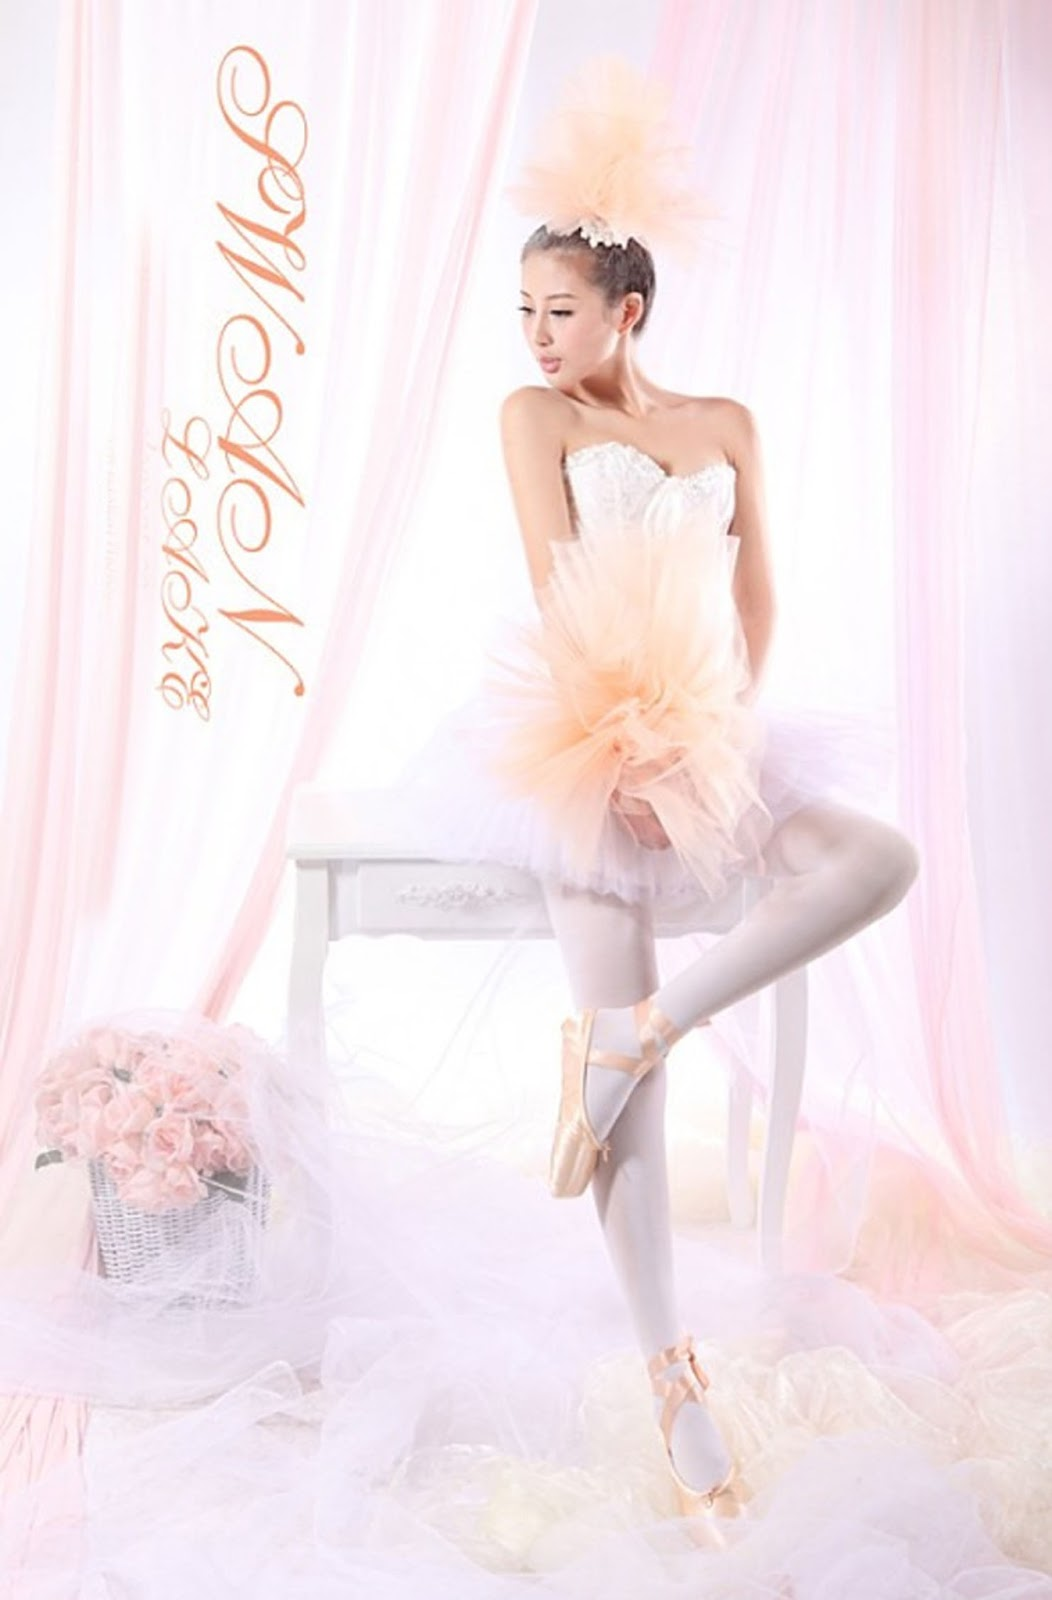 Ok wedding gallery the beauty dress of cheongsam 2013 -  Longer Than To Convey A Hazy Poetry Some Kind Of Elegant Pictorial Its White Color Represents The Swan Image Virginal Wedding Dress Is Also True